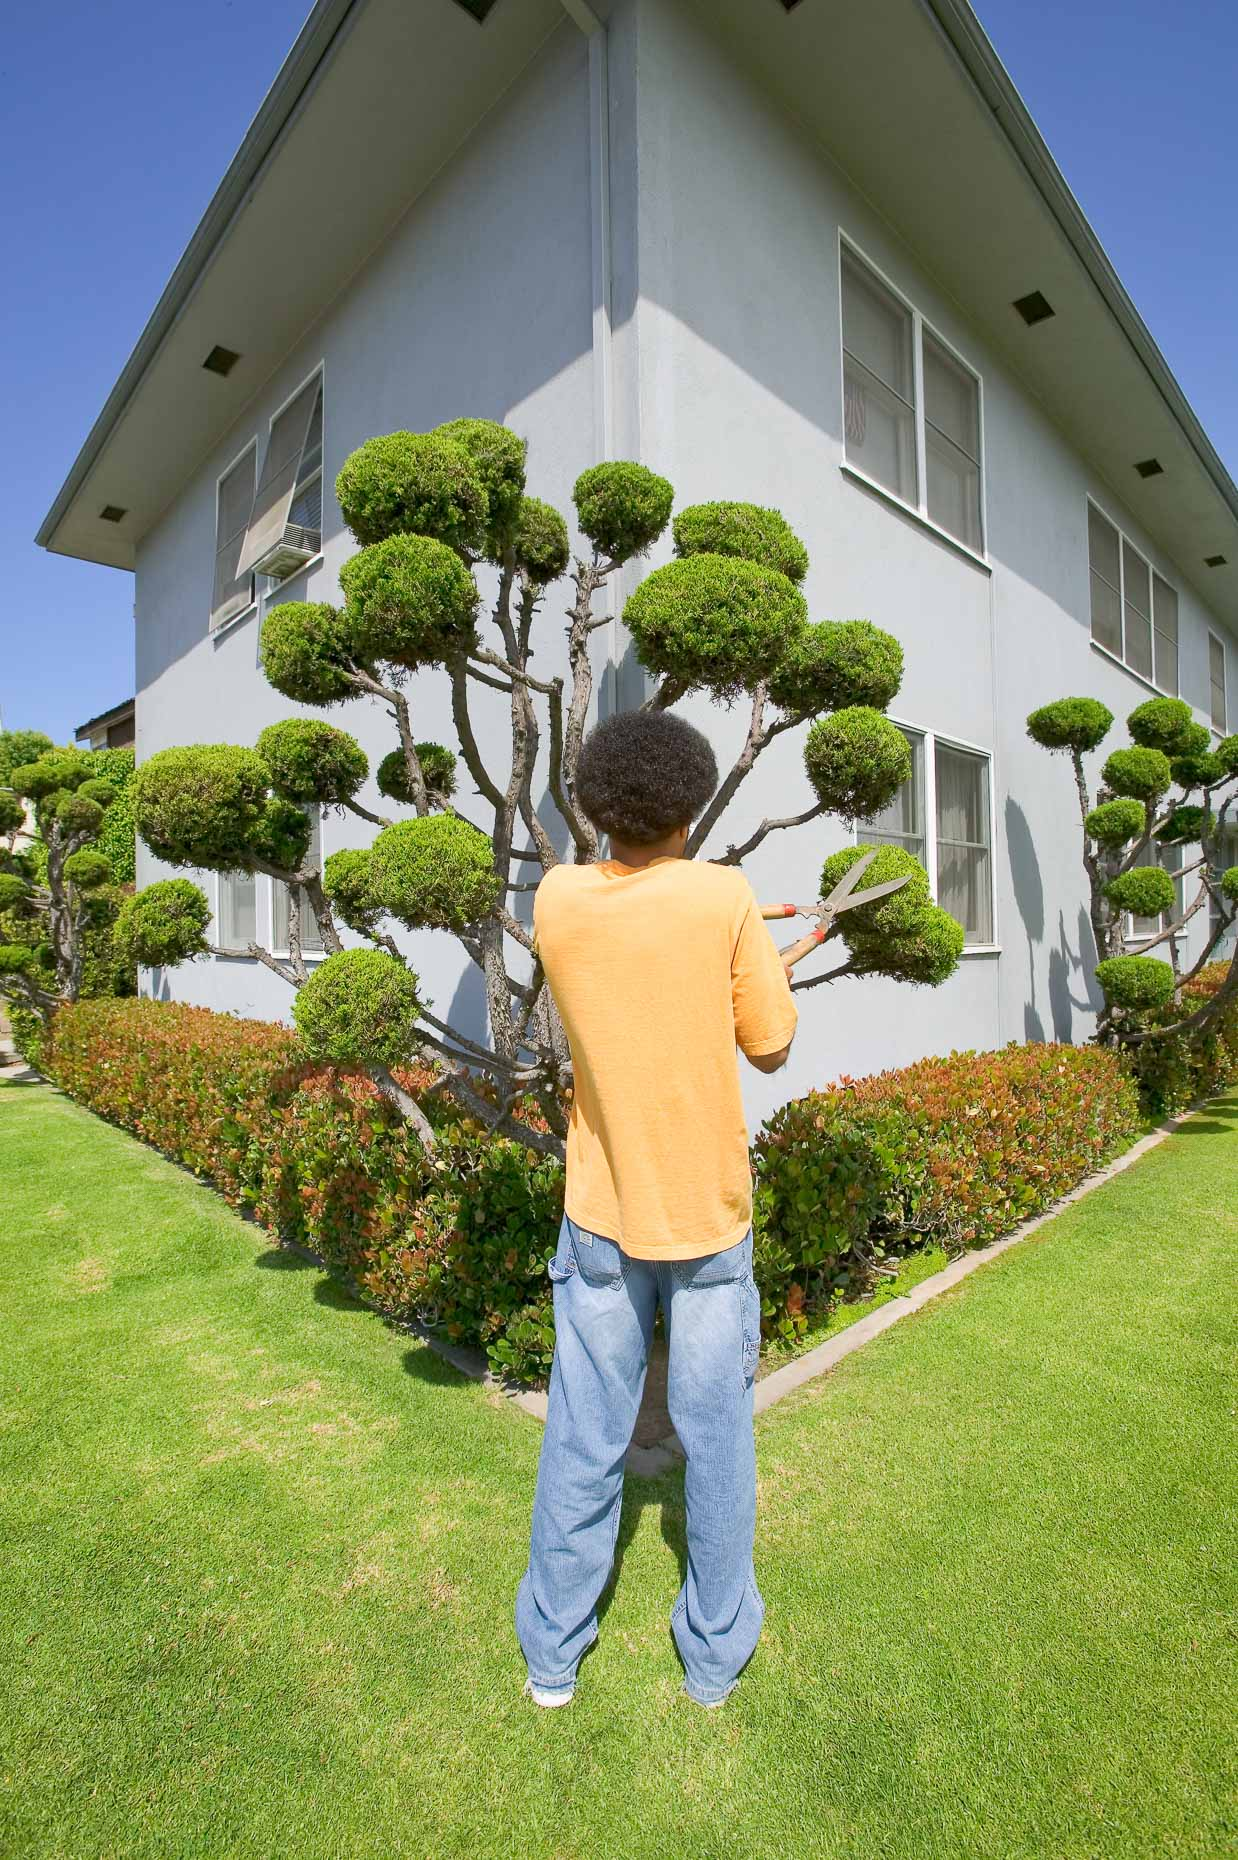 African American with afro trims topiary in shape of his hair. David Zaitz